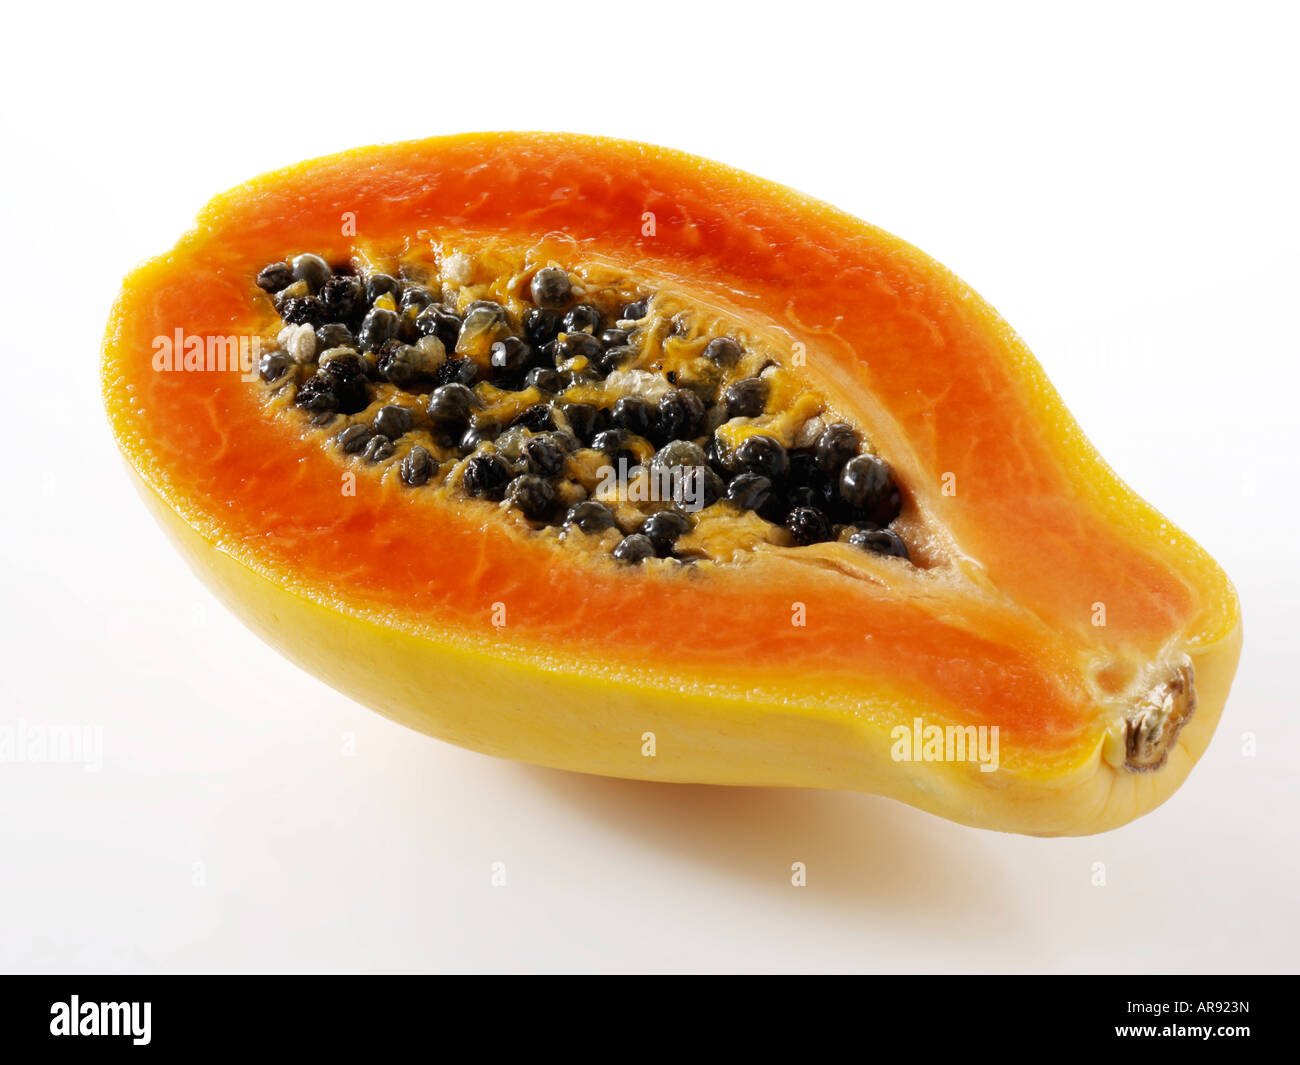 papaya tropical fruit cut in half against a white background as a cut out - Stock Image